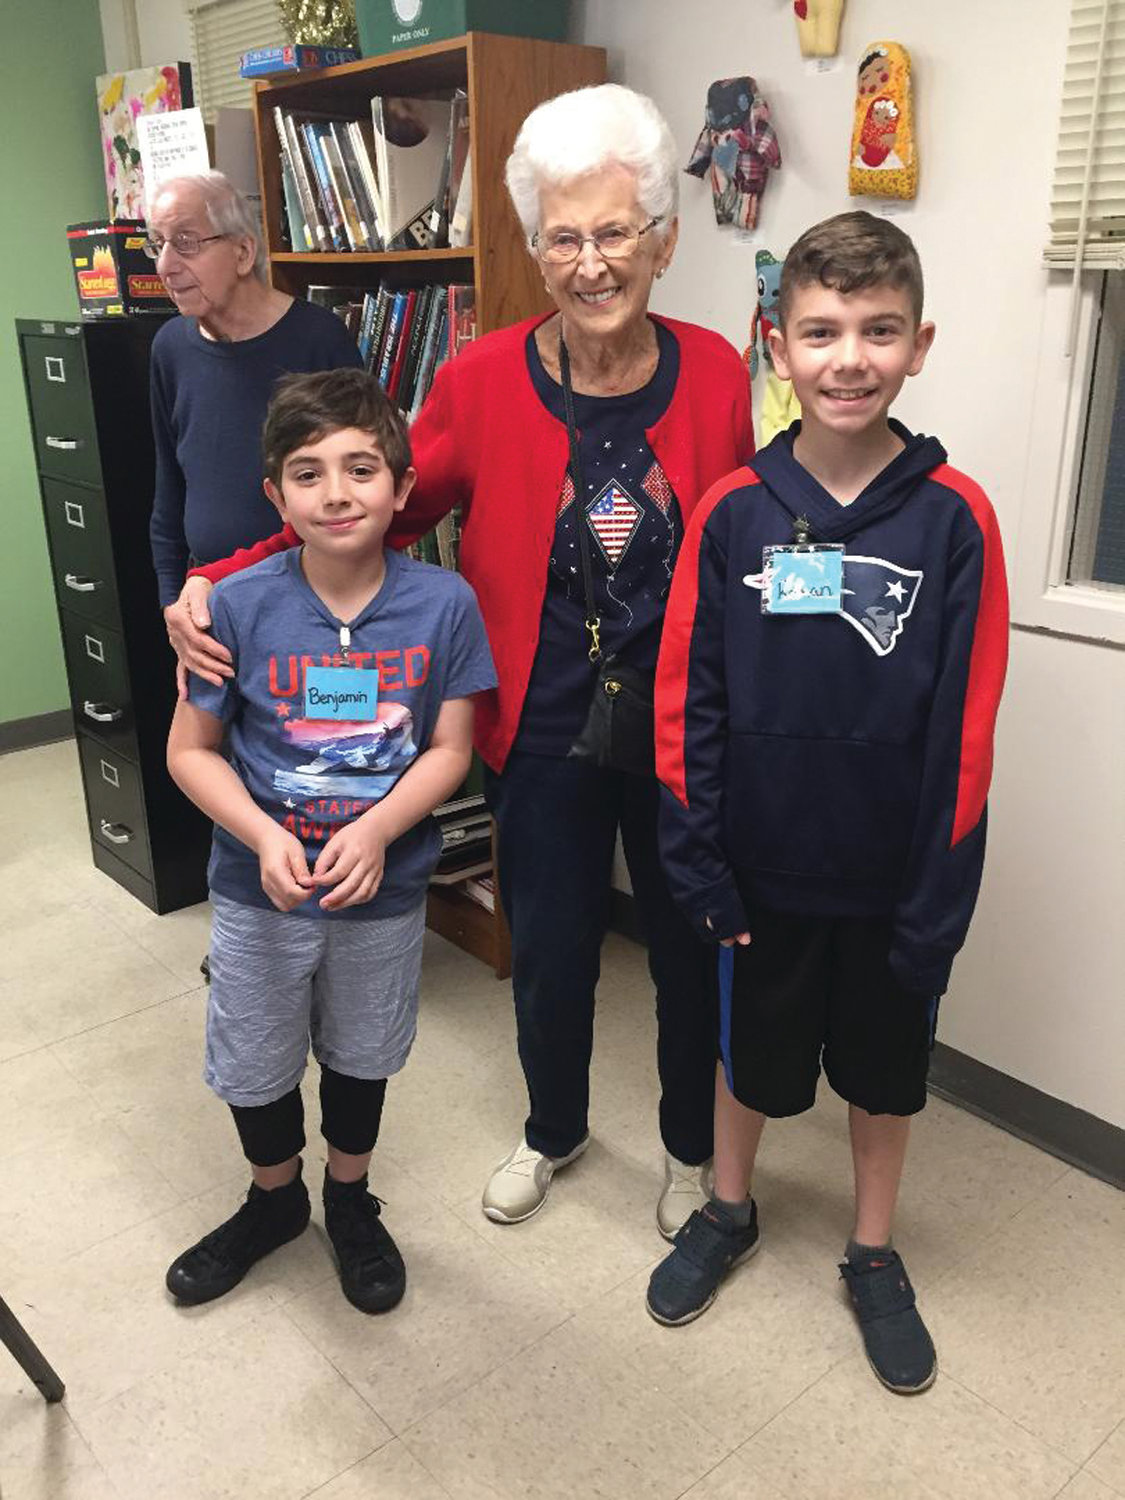 CAN'T THANK THEM ENOUGH: Students from Glen Hills Elementary School had the opportunity to visit and thank veterans at the Cranston Senior Enrichment Center on May 24. Pictured are Tony Cordo, Benjamin Huntoon, Beverly Wareham and Roman Iacobucci.